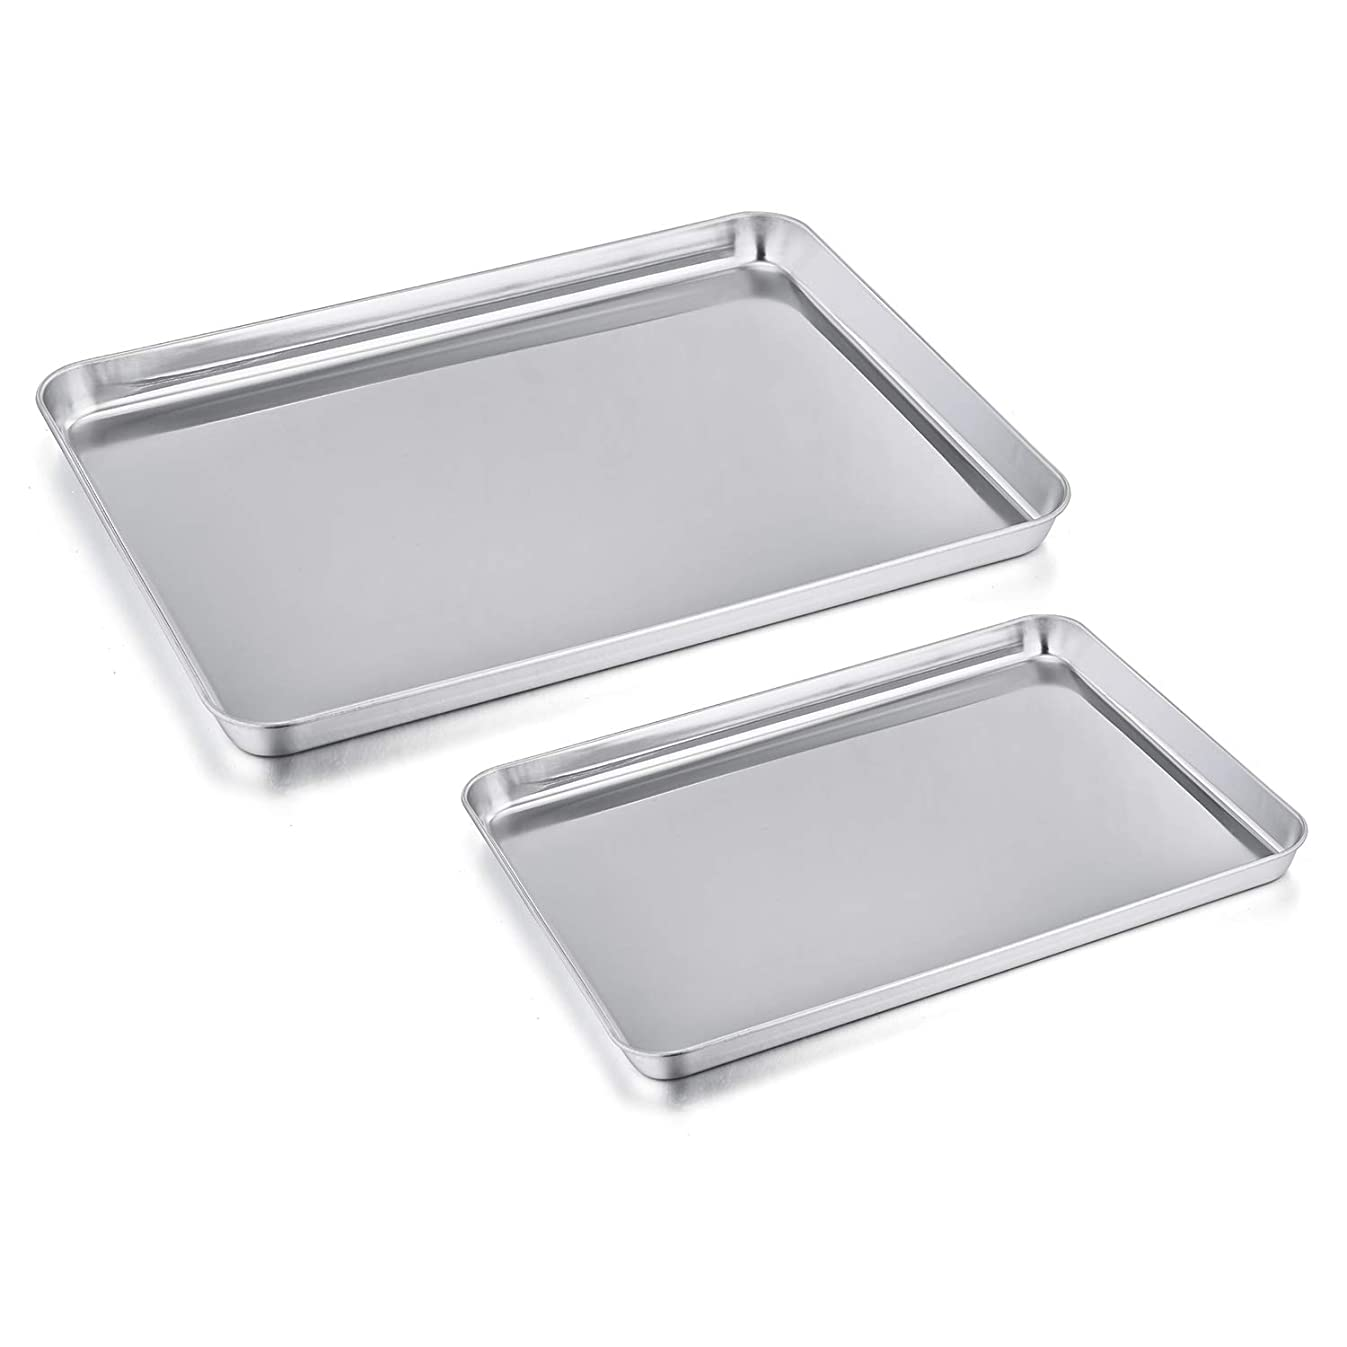 Toaster Oven Pan Tray Set of 2, P&P CHEF Stainless Steel Small Baking Sheets Pans, Rectangle Shape & Deep Rim, Non Toxic & Dishwasher Safe, 12.5 inch & 9 inch